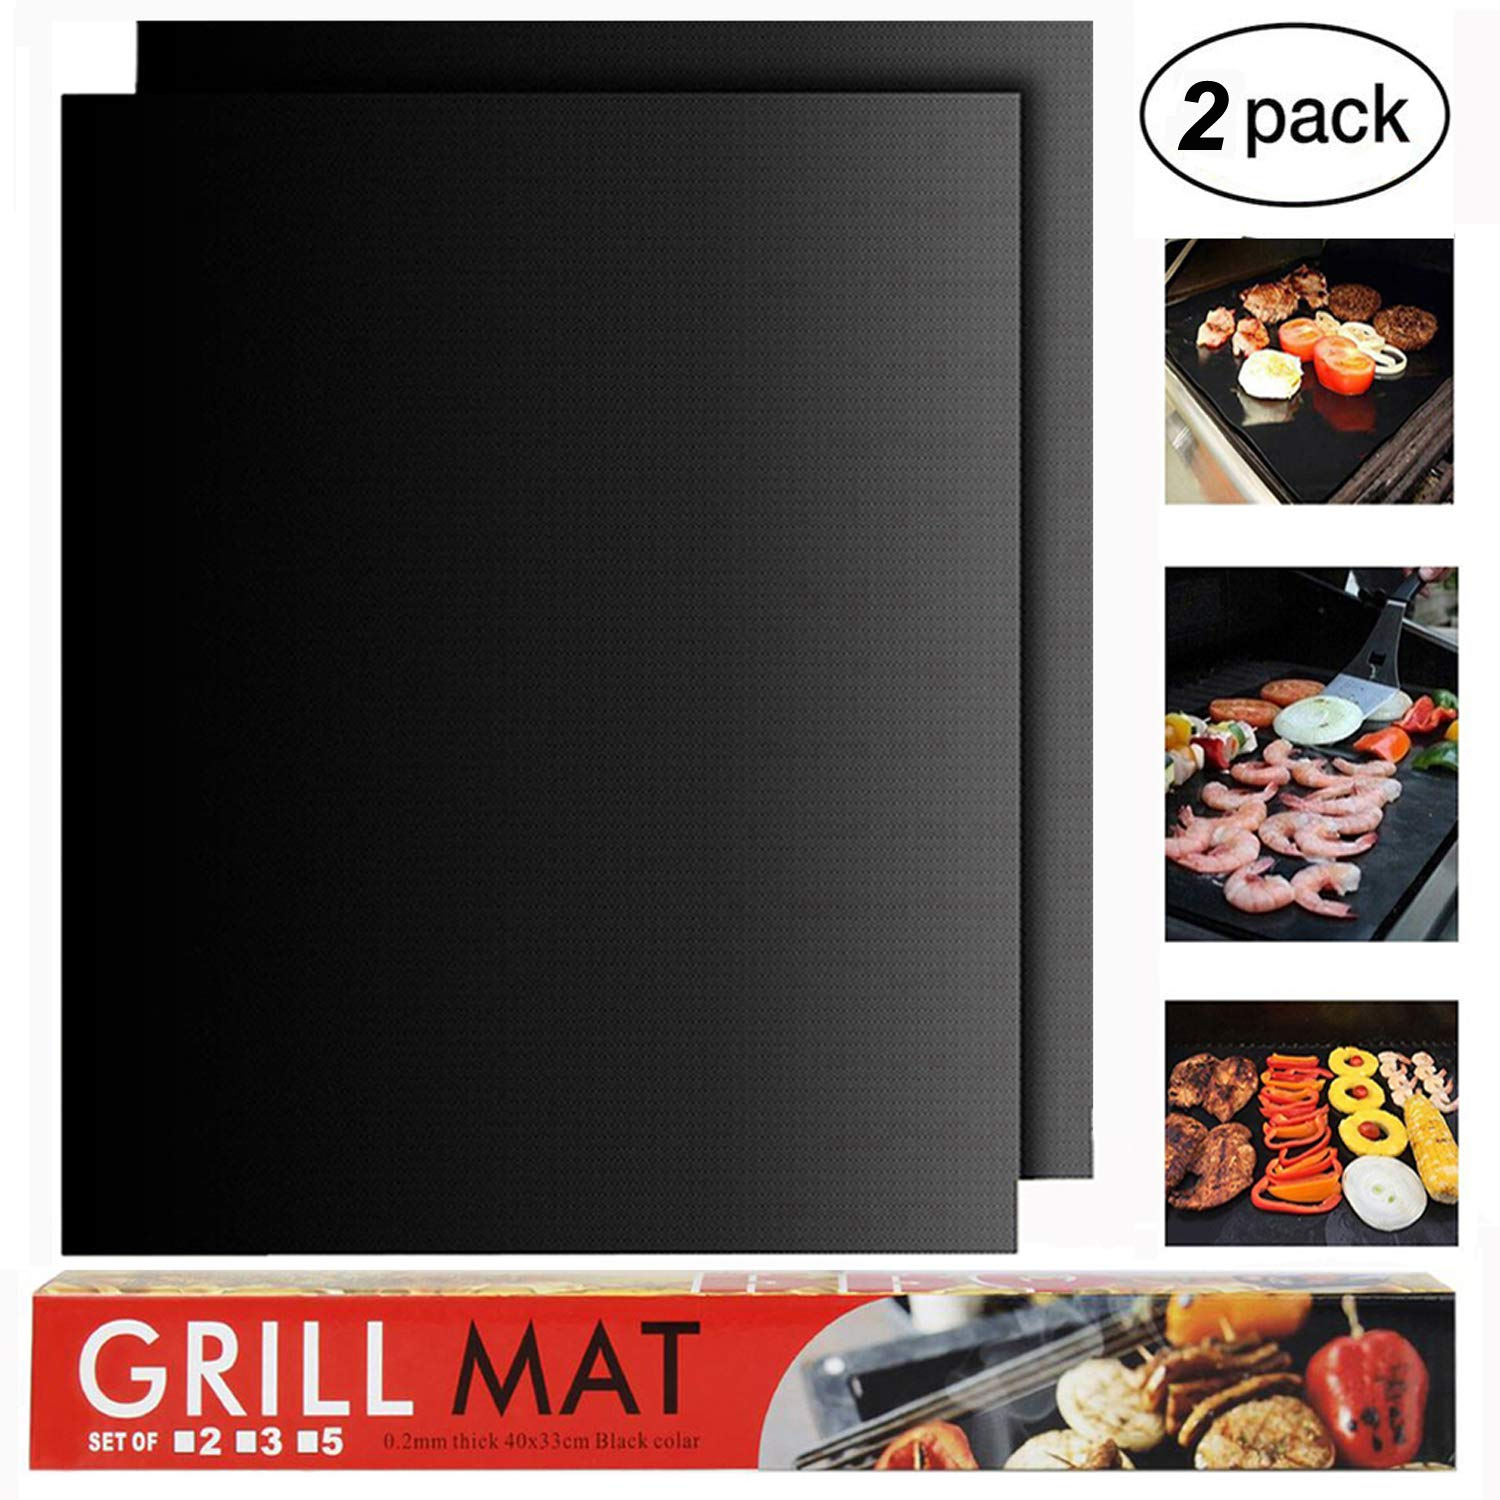 RENOOK BBQ Grill Mat Set of 2-Heavy Duty, 100% Non-Stick Mats Reusable, and Easy to Clean Barbecue Grilling Accessories-15.75x13-Inch,Black